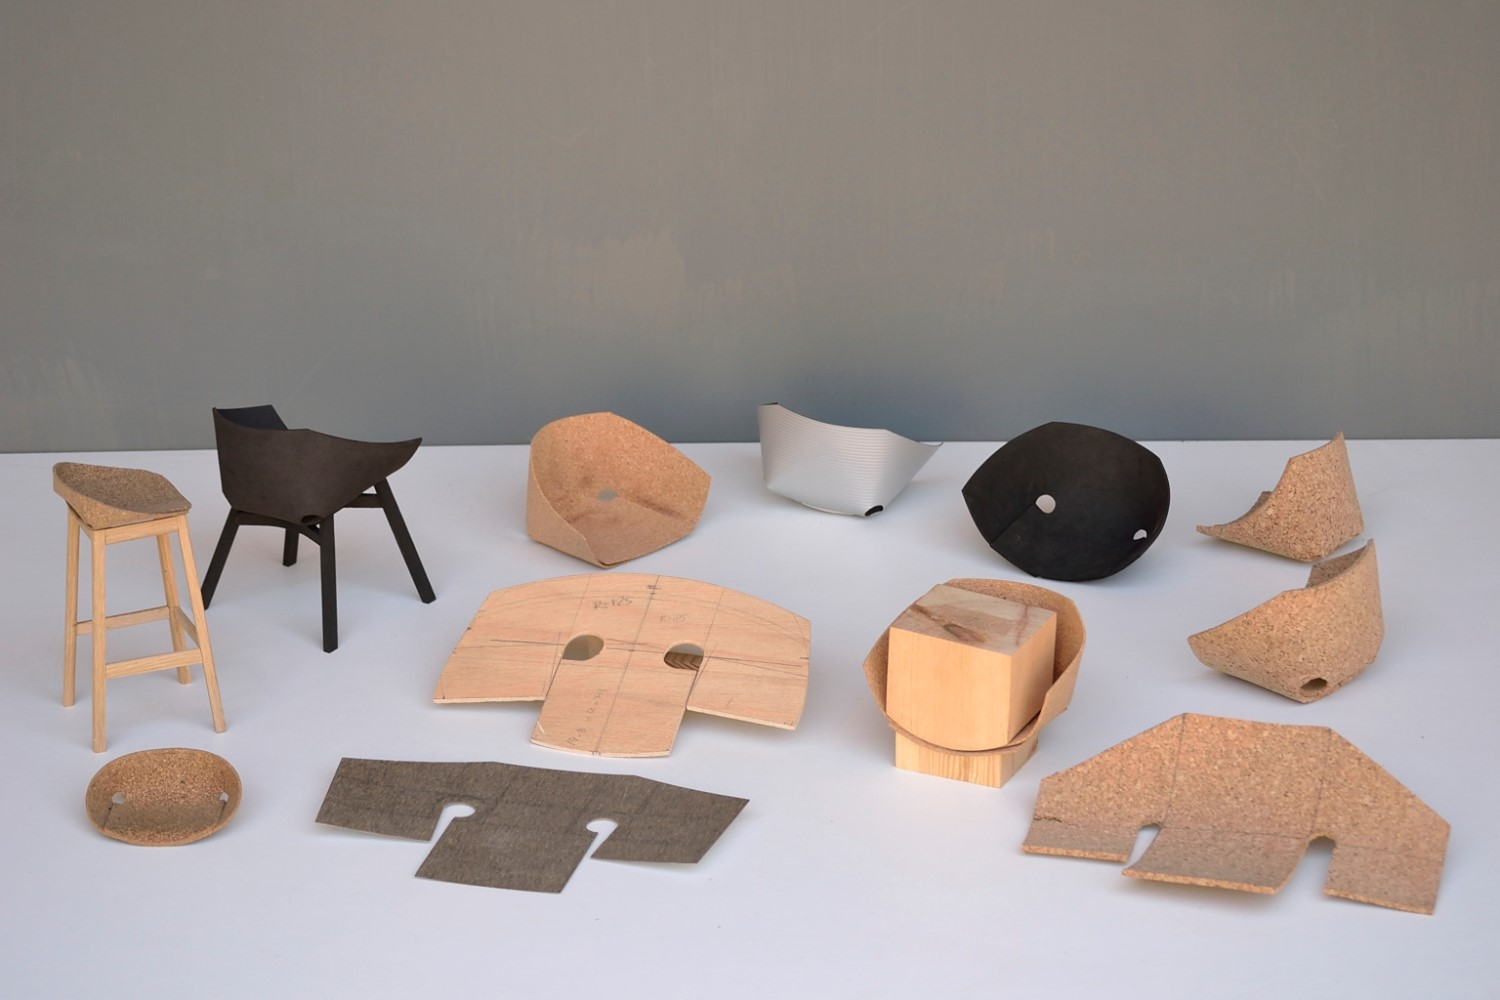 Scale models were used to develop the  flat and finished shape of  Carlos Otega's 'Corkigami' chair.